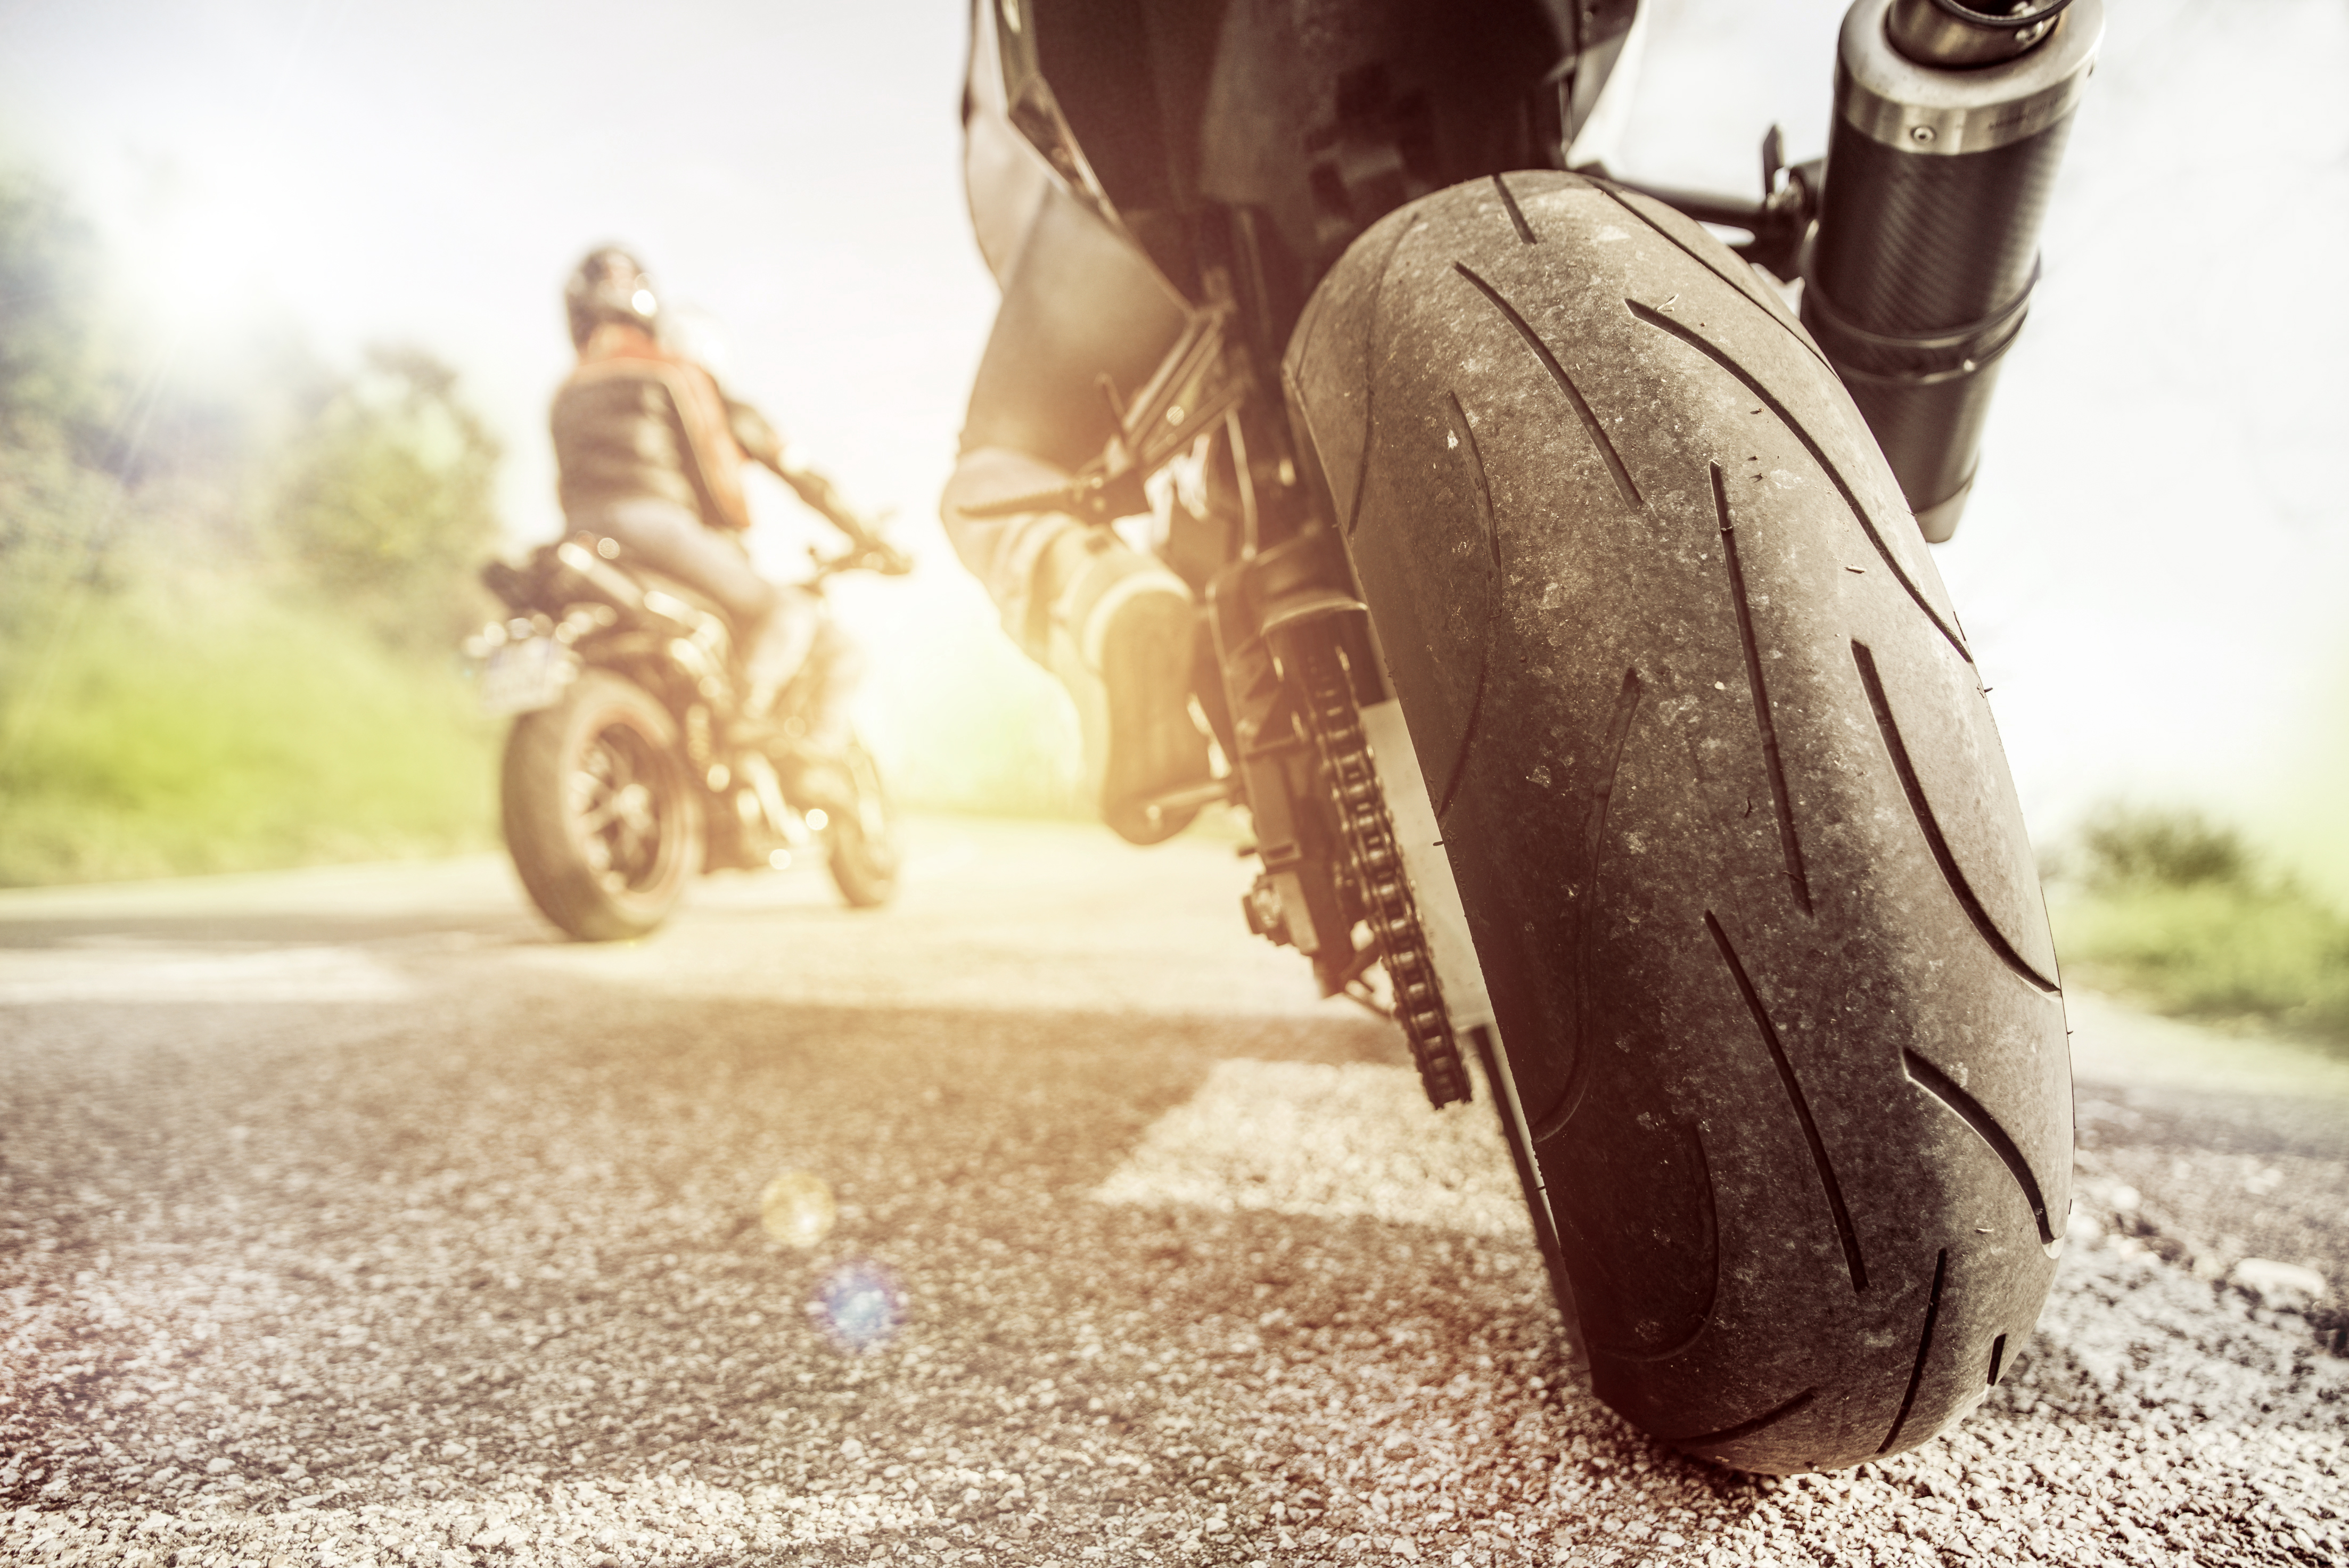 Bosch's Two-Wheeler & Powersports business continues to gain speed